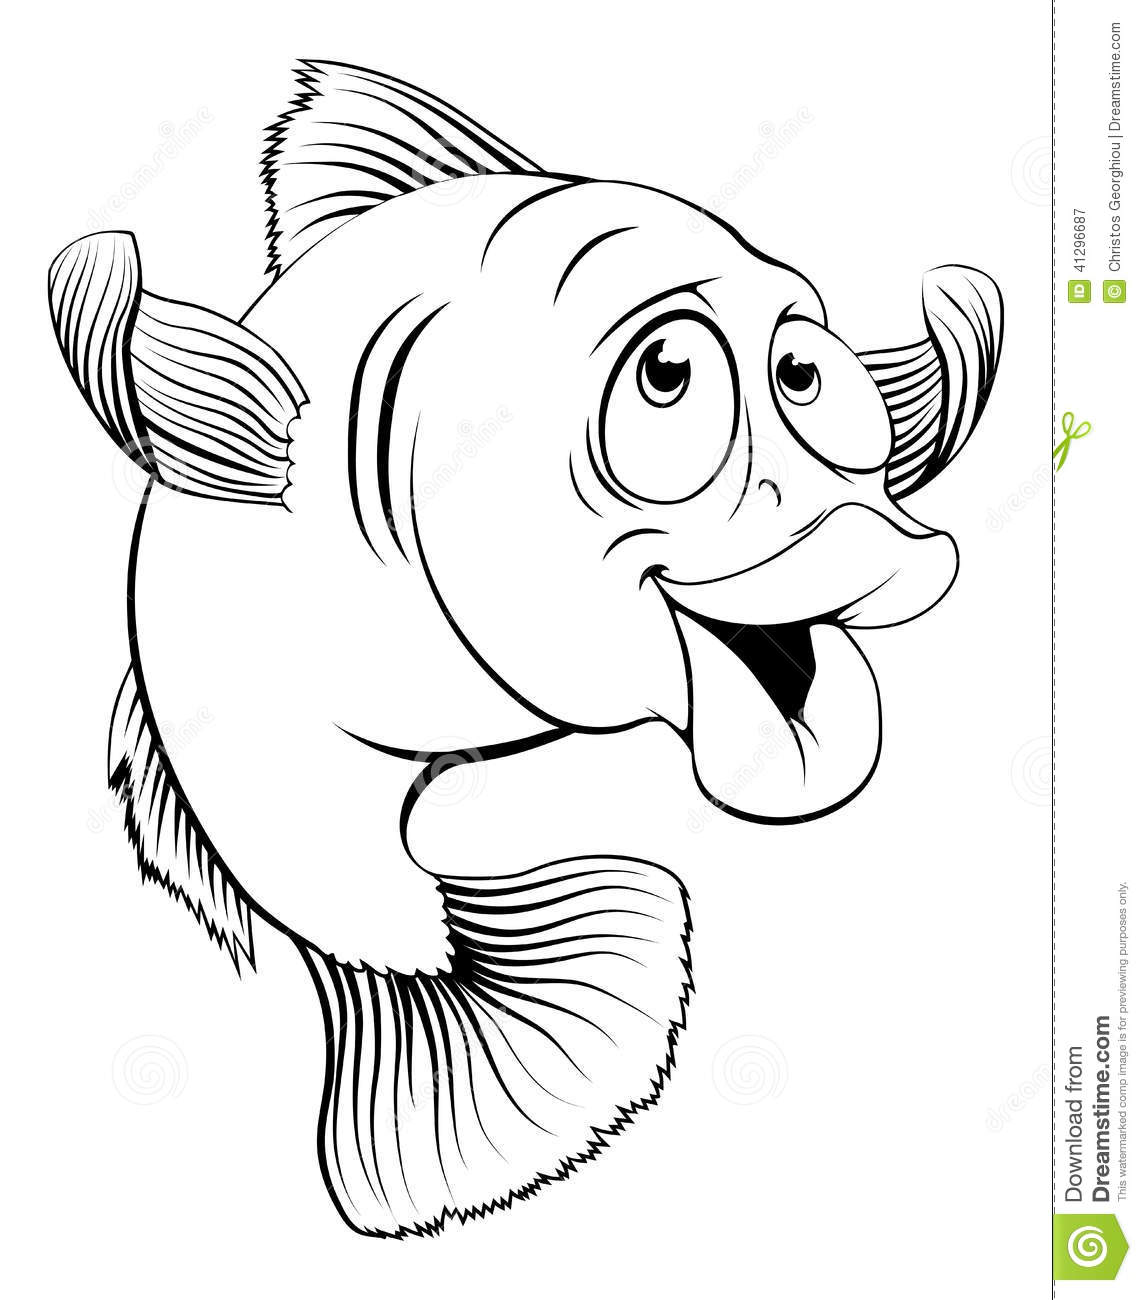 Clip Art Fish And Chips Free